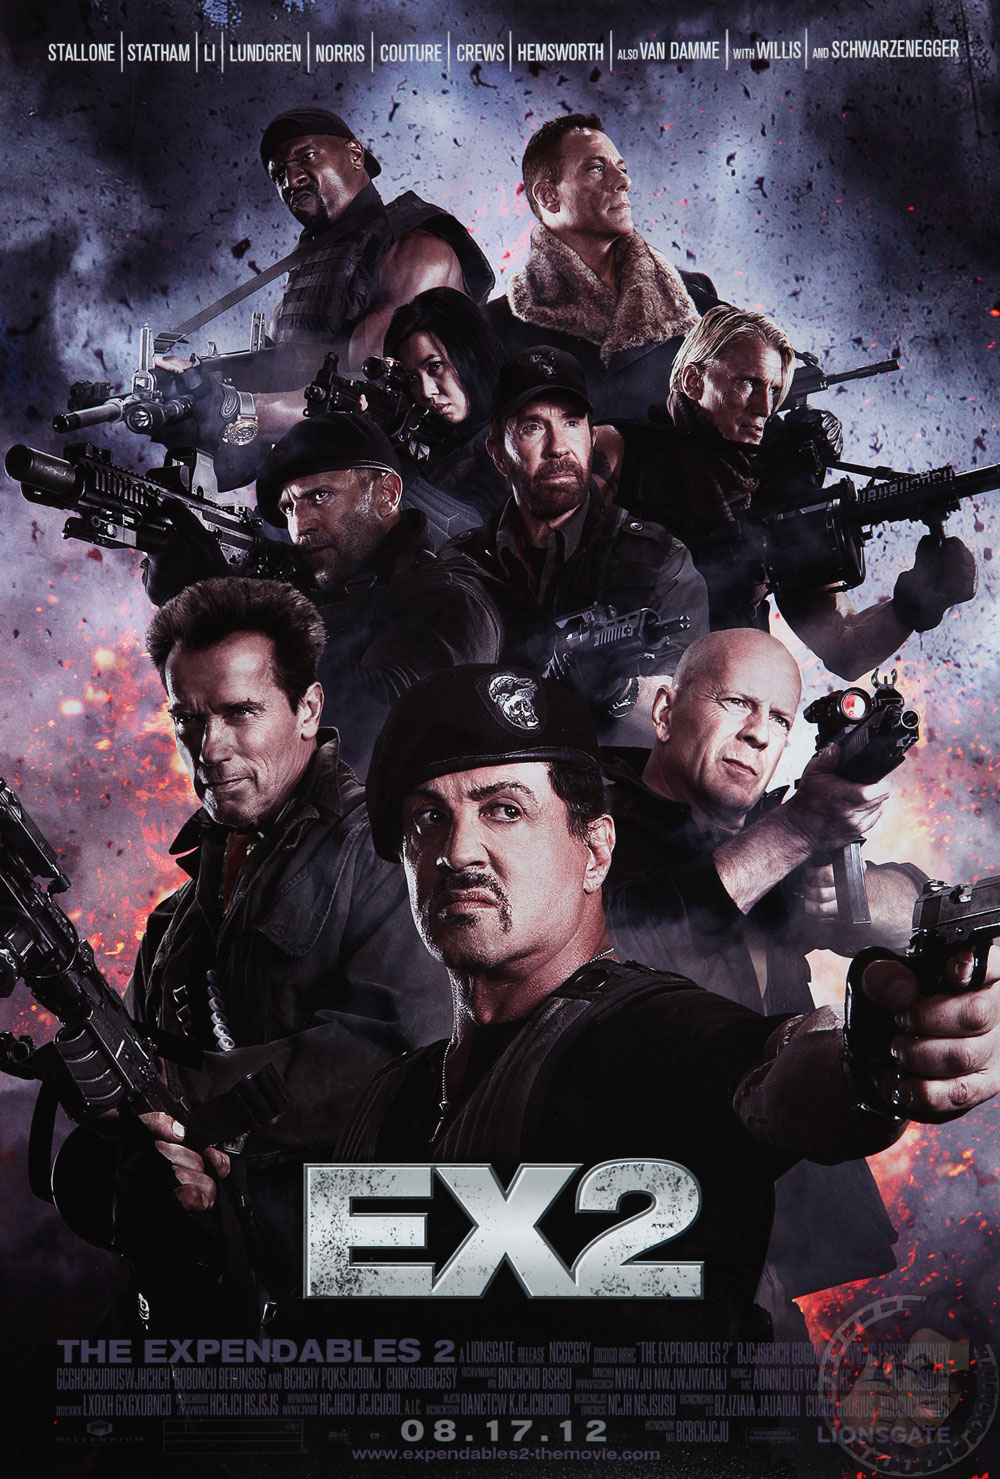 aevis entertainment been this gonna sure interview film 80-90 makes 2012 spoilered 17th august expendables about popular around going thats theory while